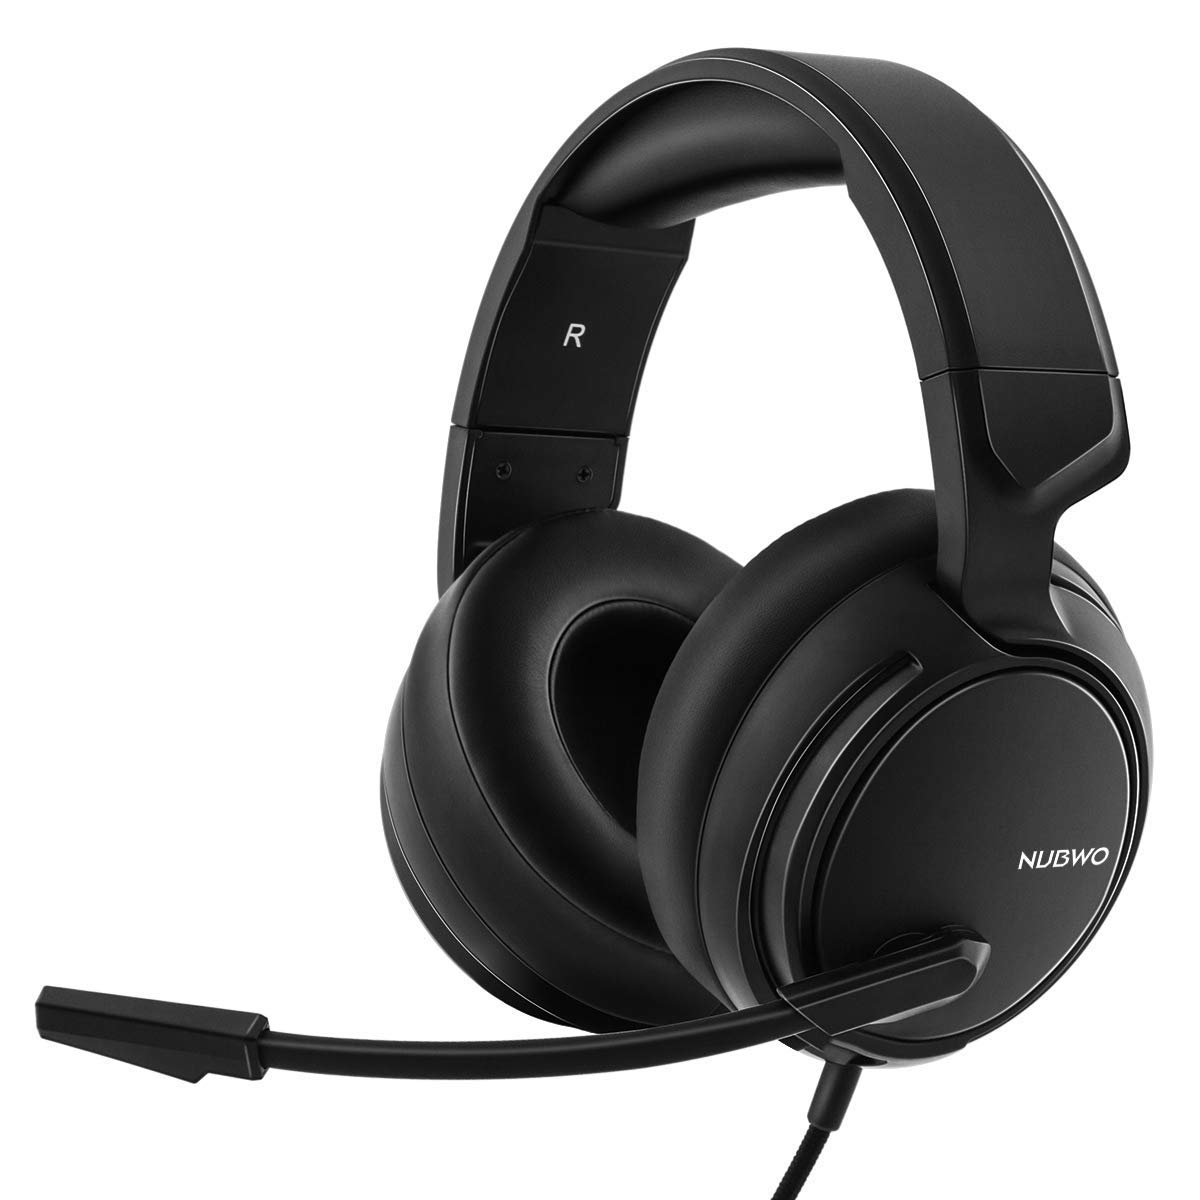 NUBWO N12 Surround Sound Stereo Gaming Headset with Mic for PlayStation 4, PS4, Xbox One Controller, Nintendo Switch Lite, PC, Laptop, Android & IOS Phone by NUBWO